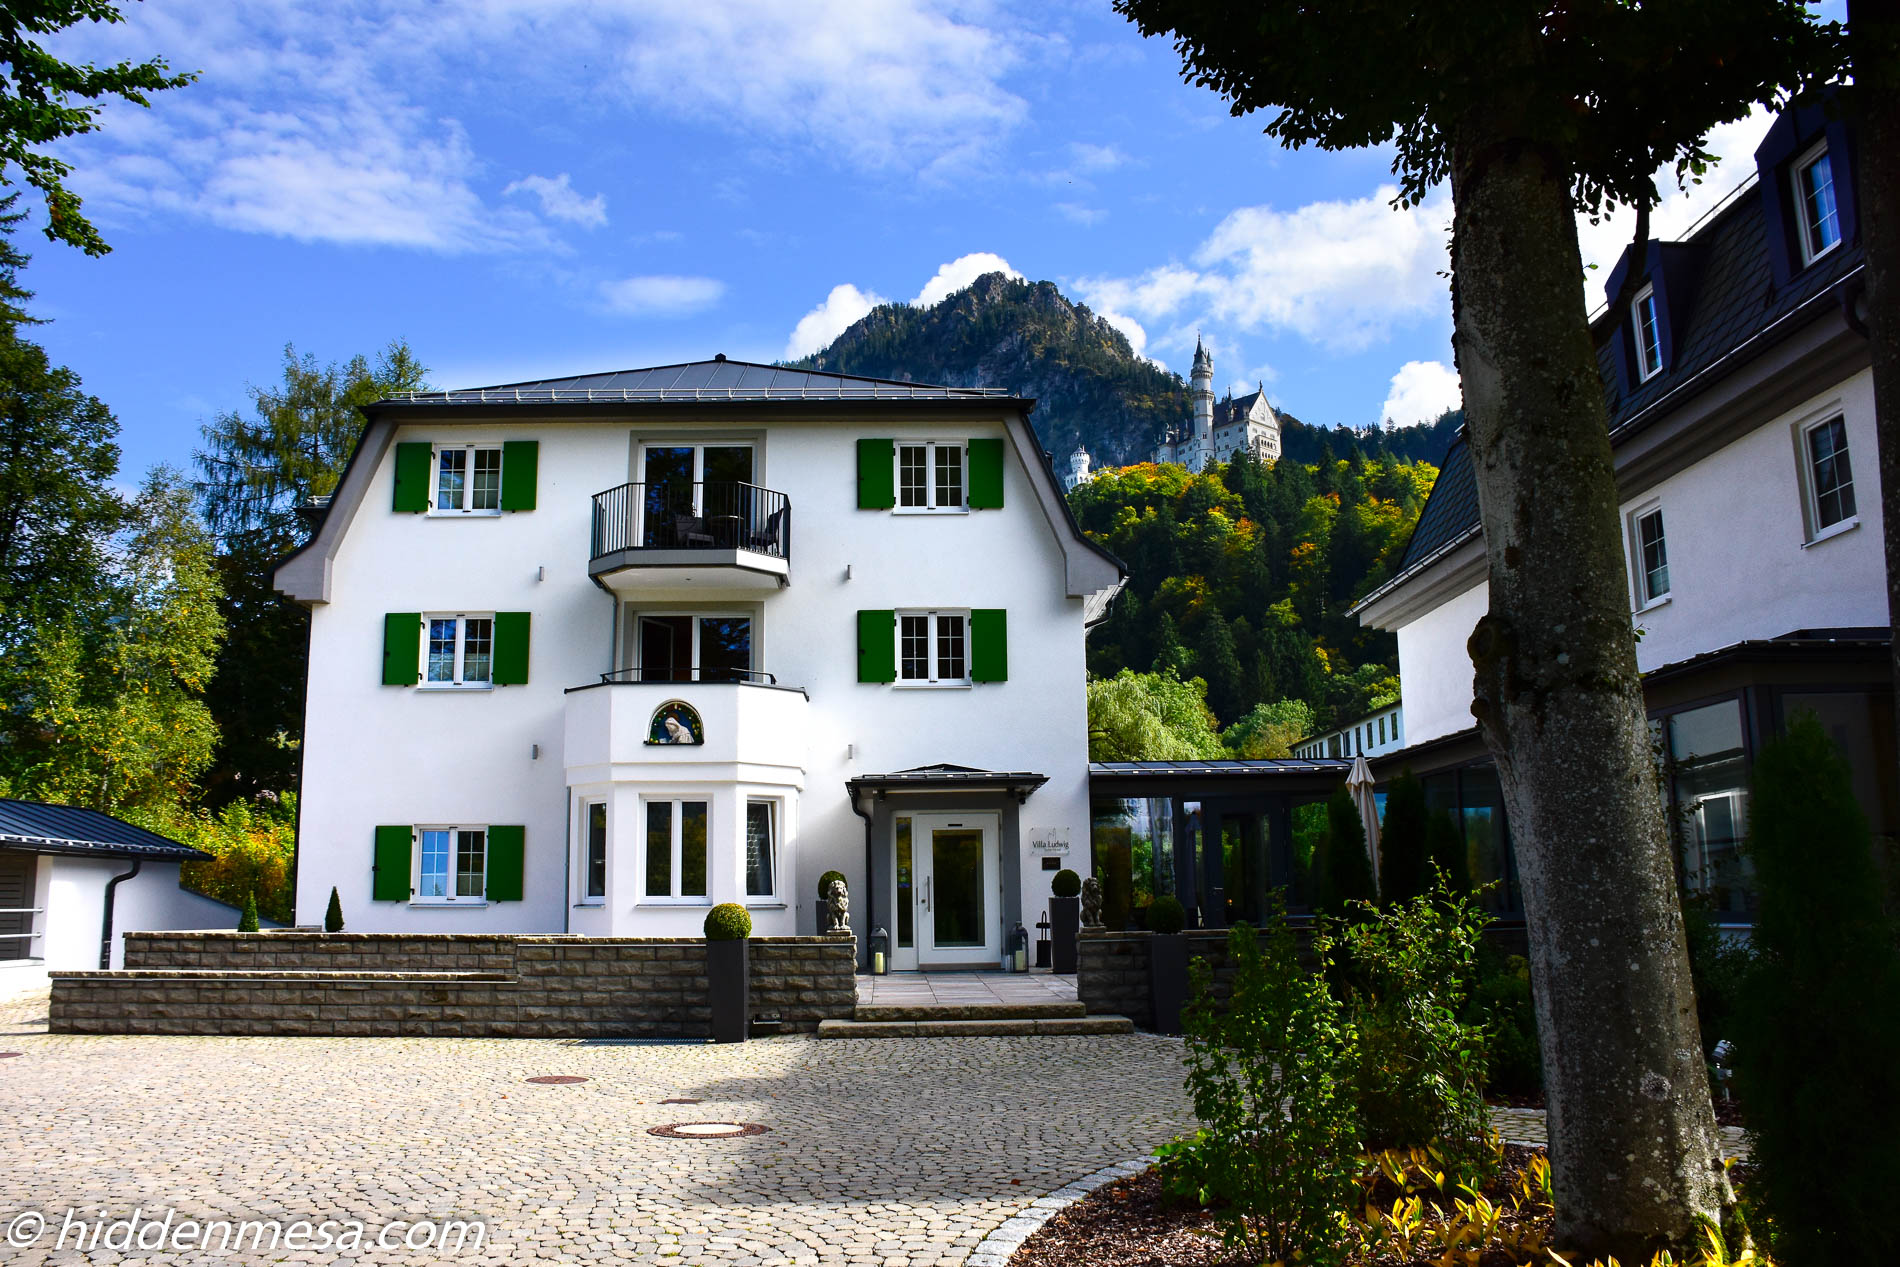 Villa Ludwig – A Great Hotel In Southern Germany